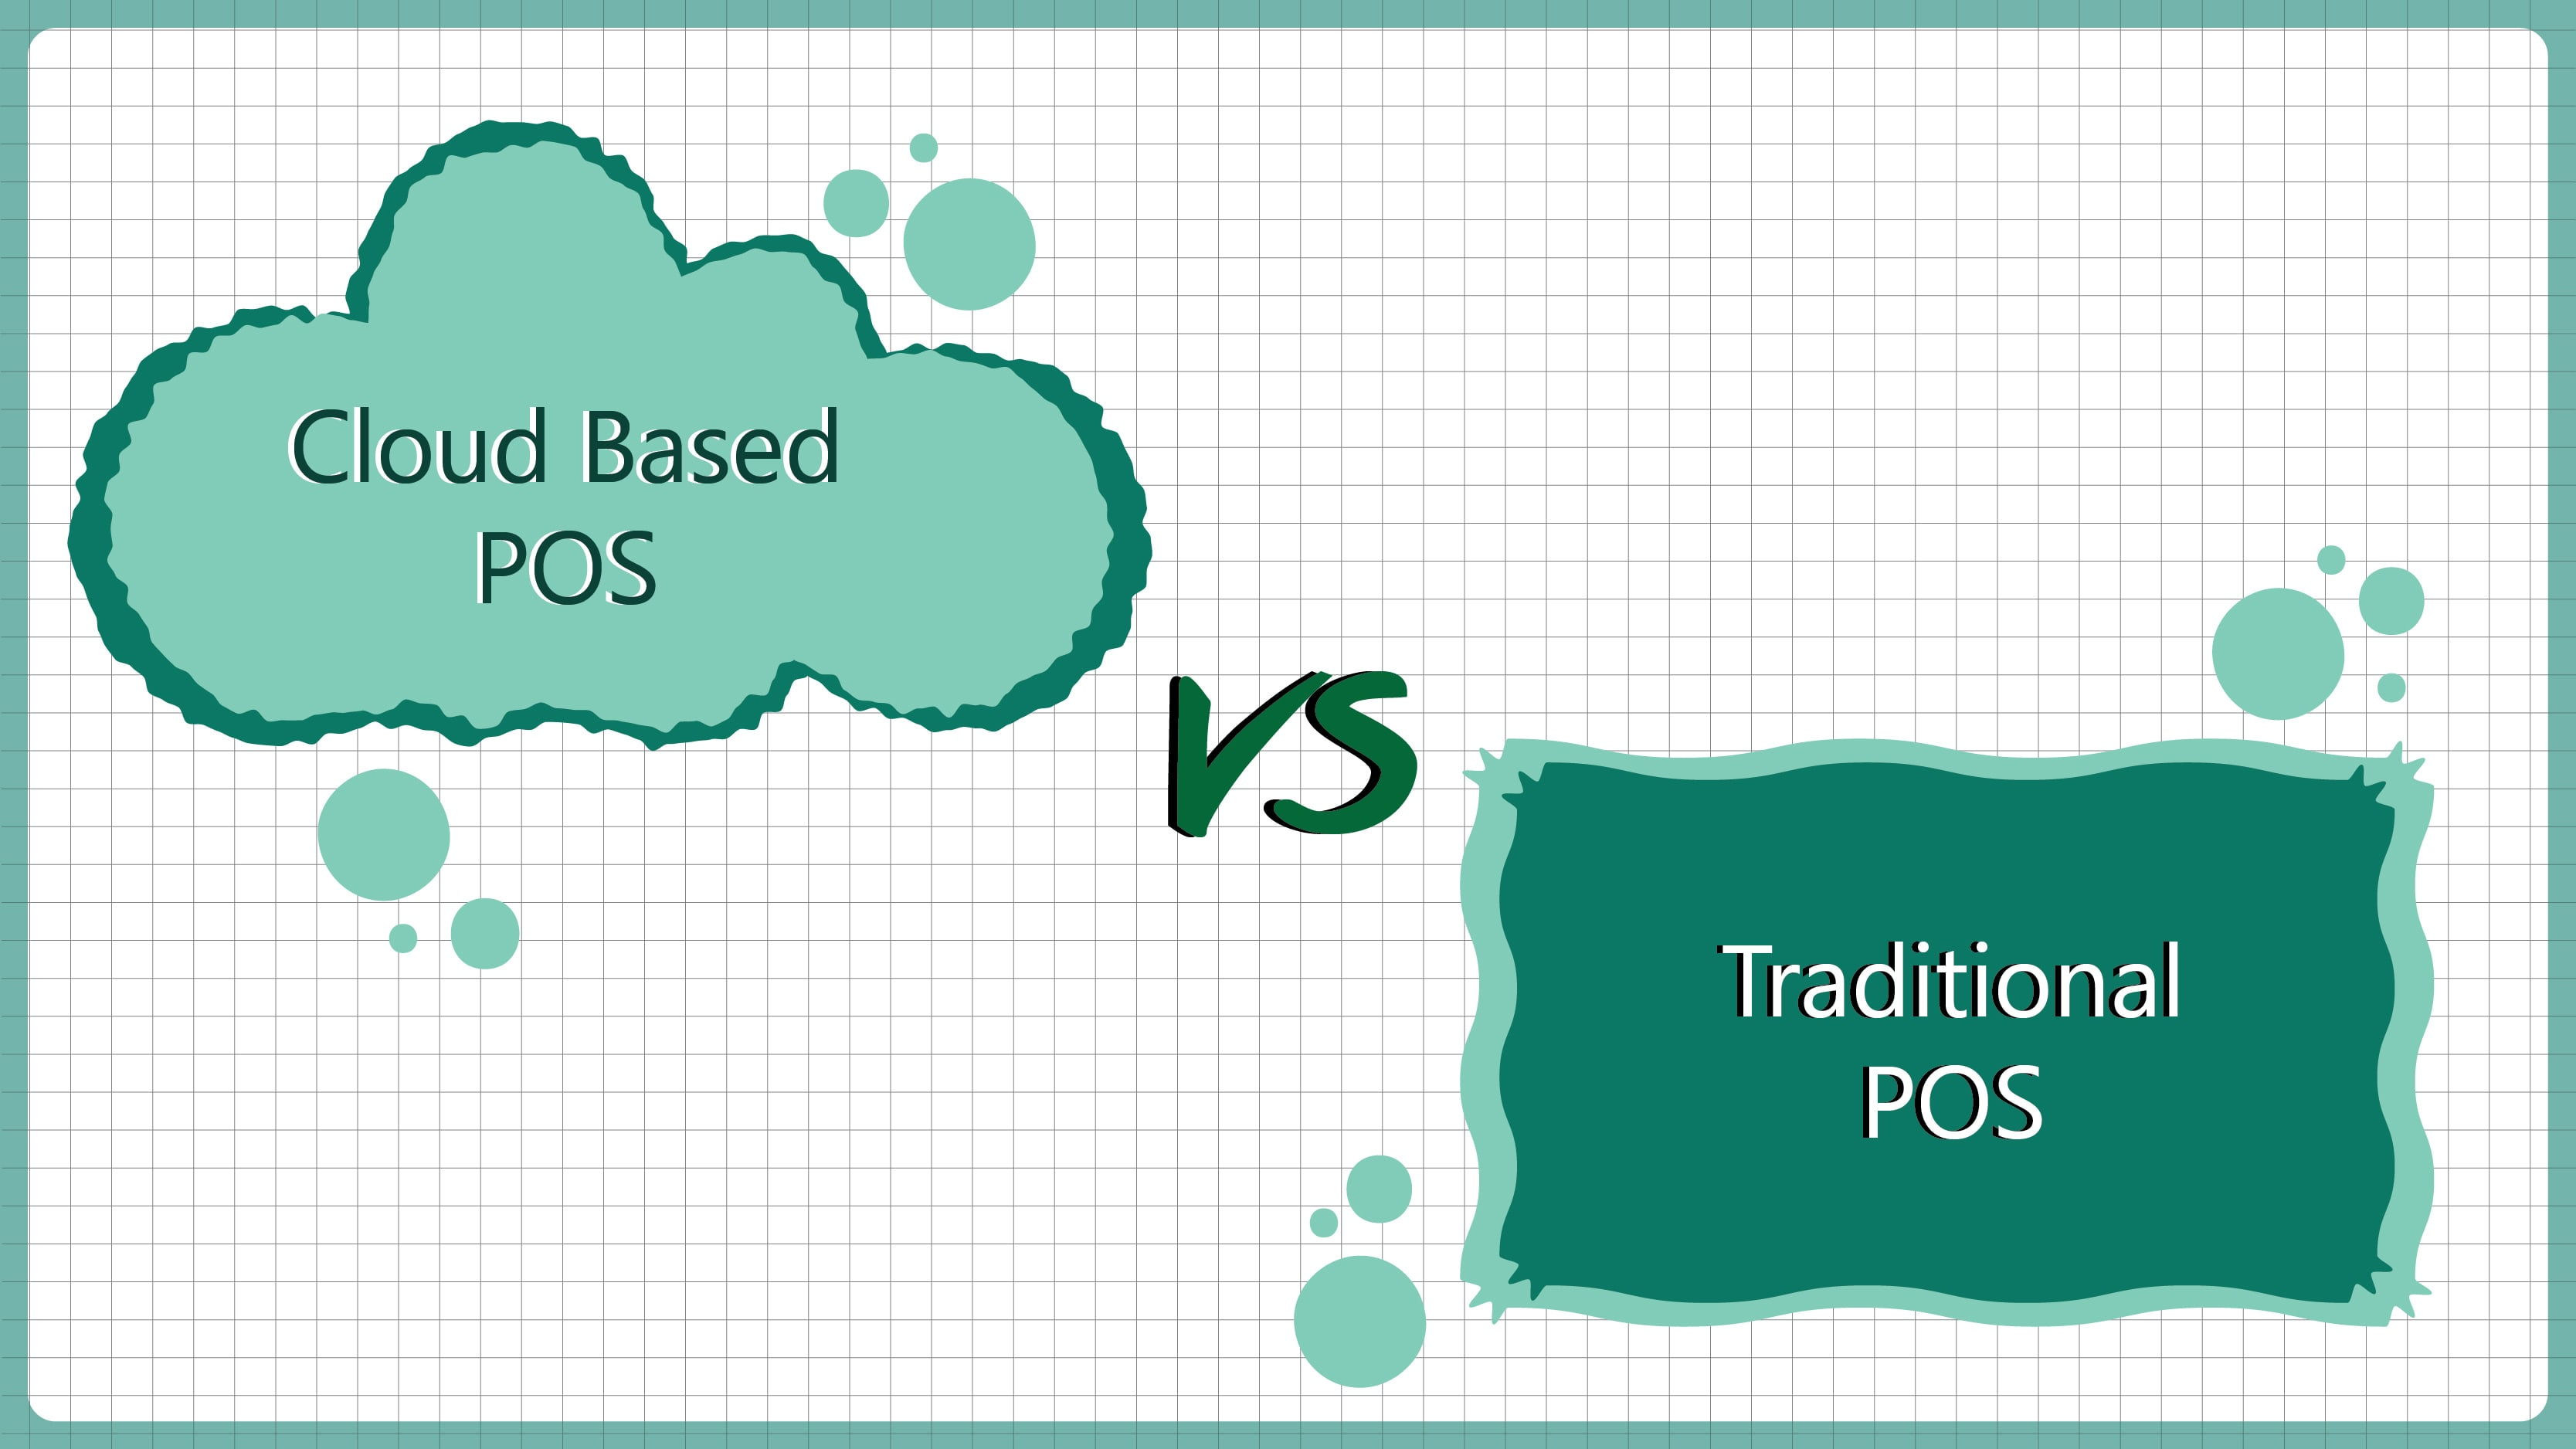 cloud based pos vs traditional pos